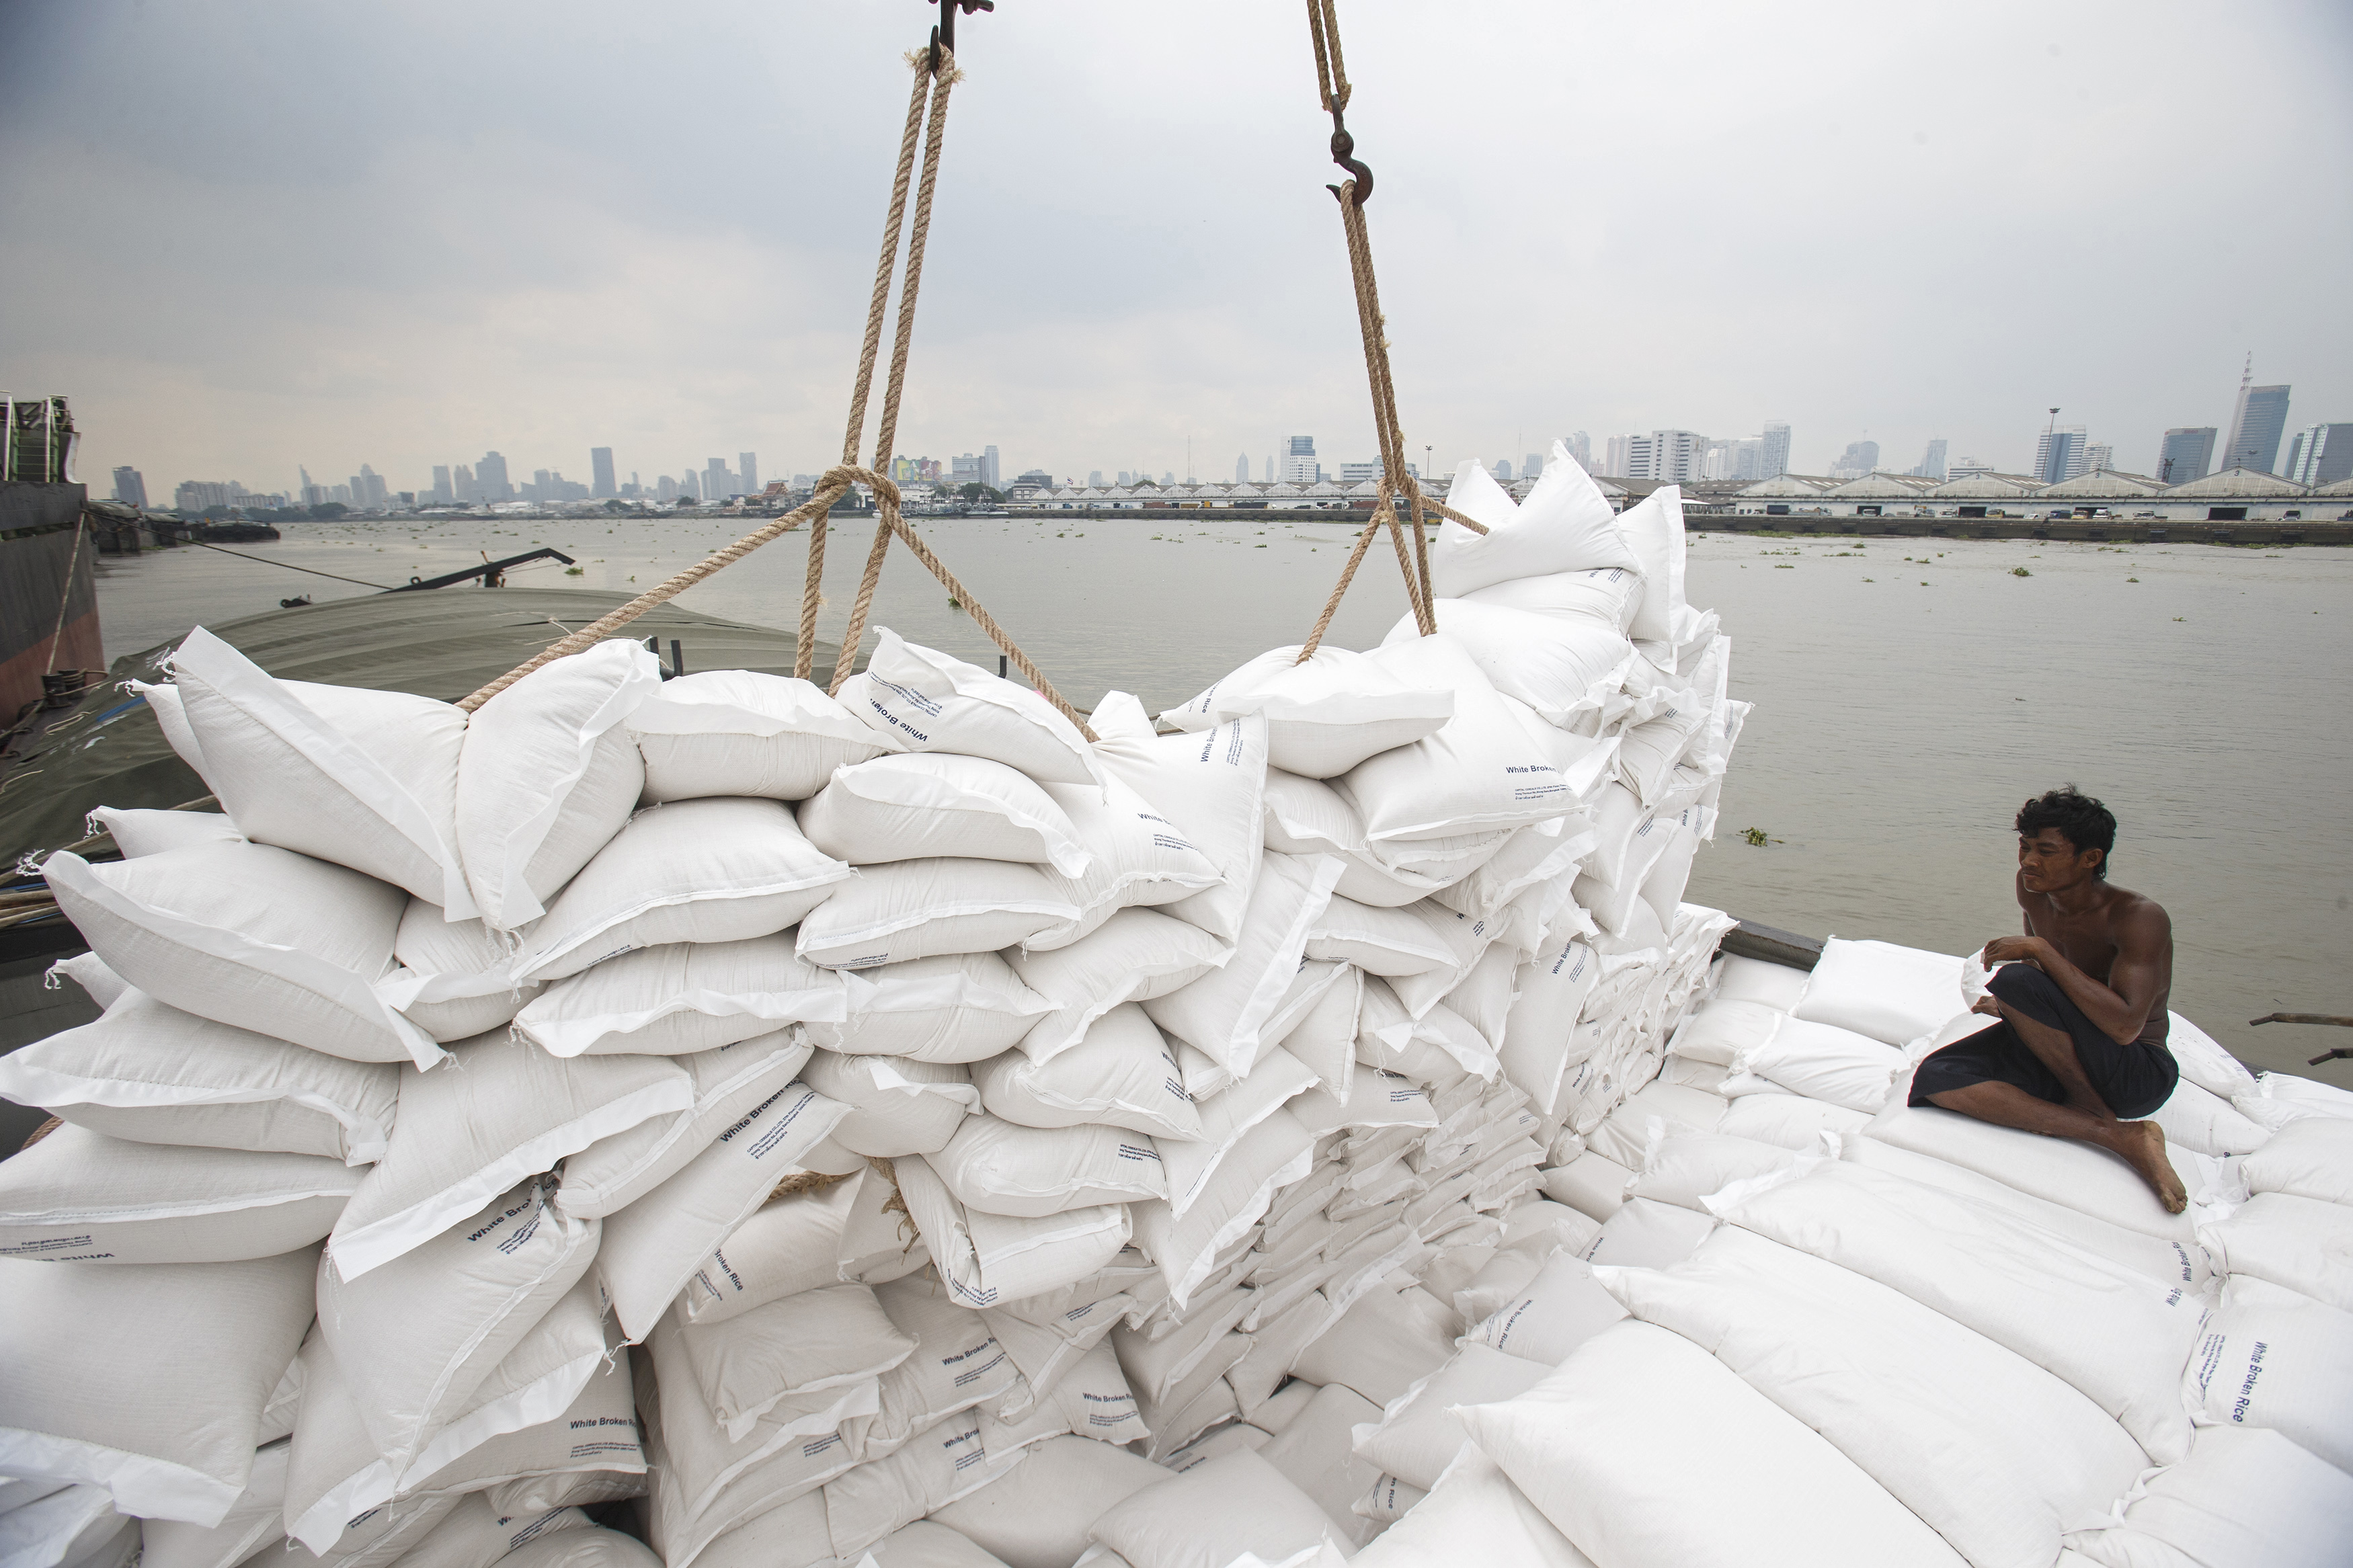 A migrant worker unloads sacks of rice from a barge to a cargo ship on The Chao Phraya River in Bangkok, Thailand, Aug. 27, 2014.